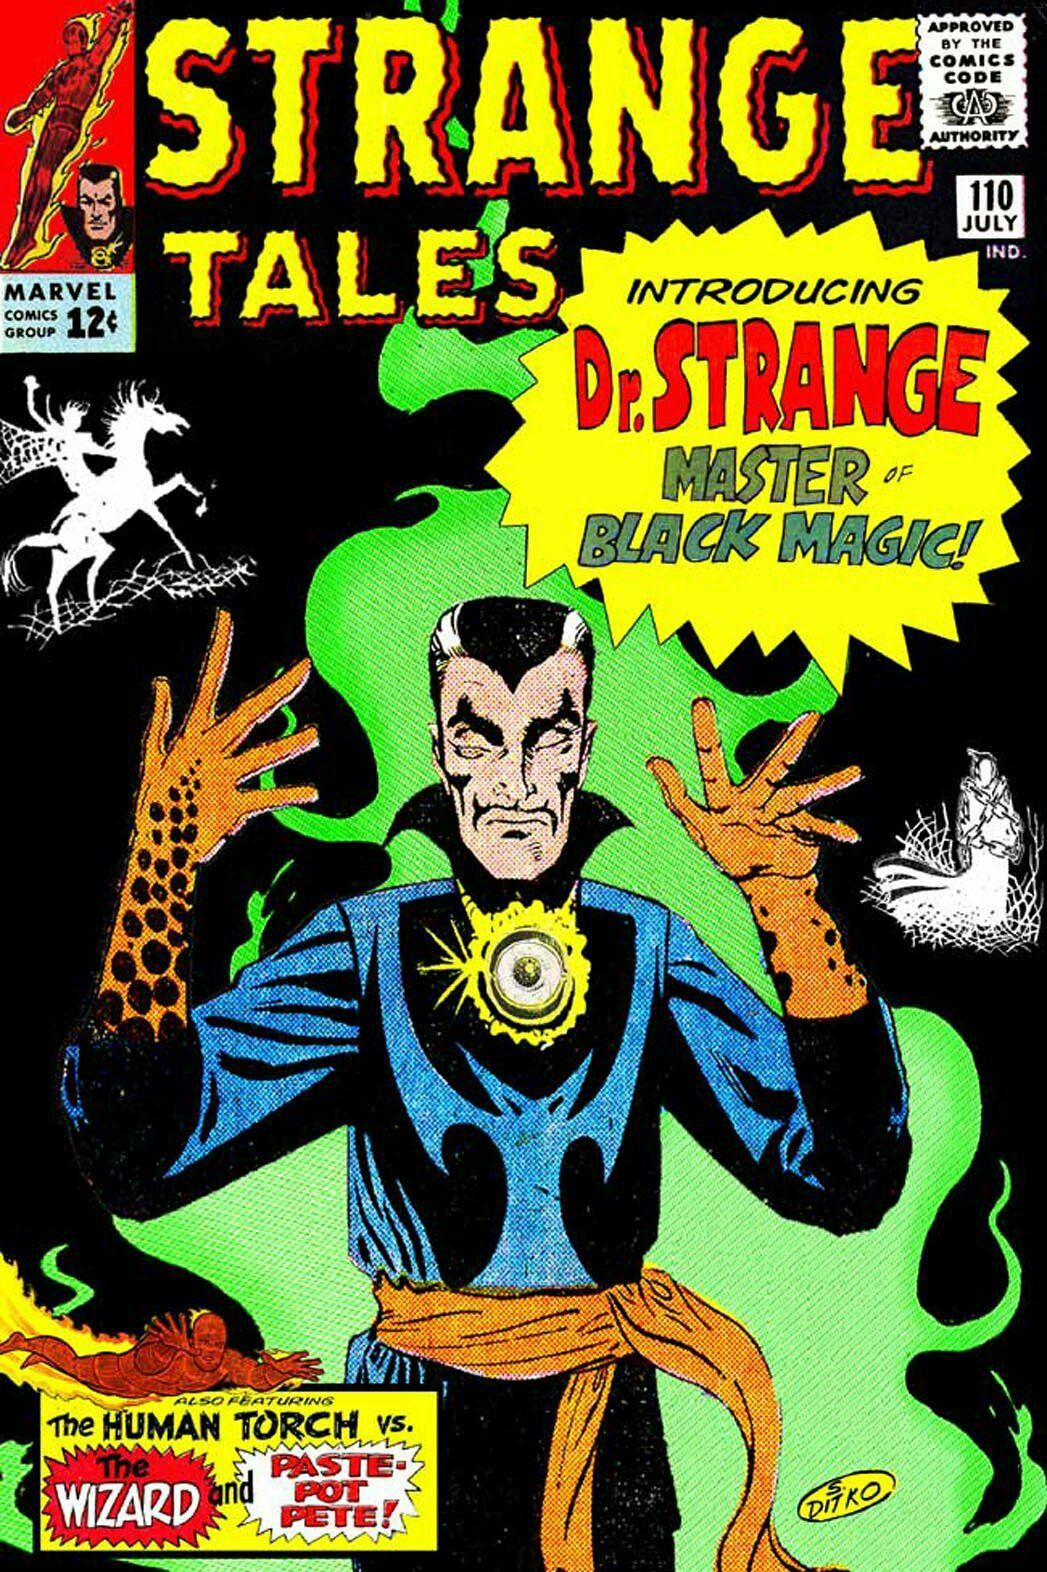 Image result for strange tales 110